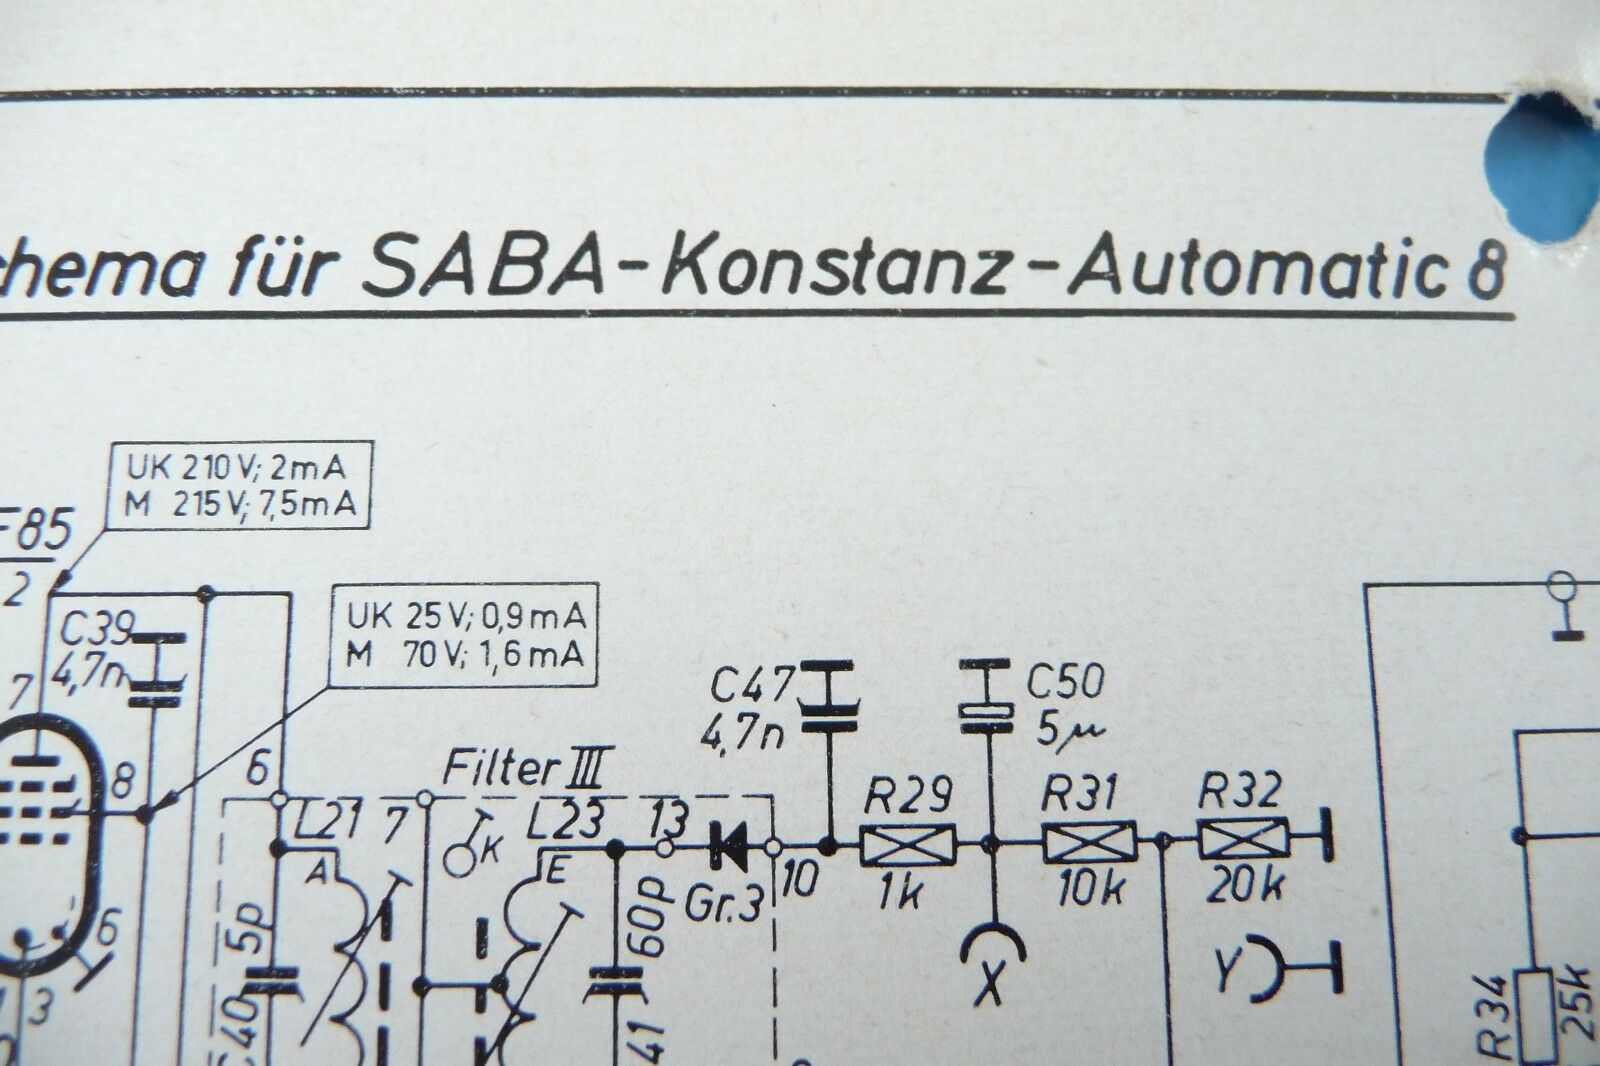 Service Circuit Diagram For Saba Konstantz Automatic 8 320 Dvb T 1 Of See More